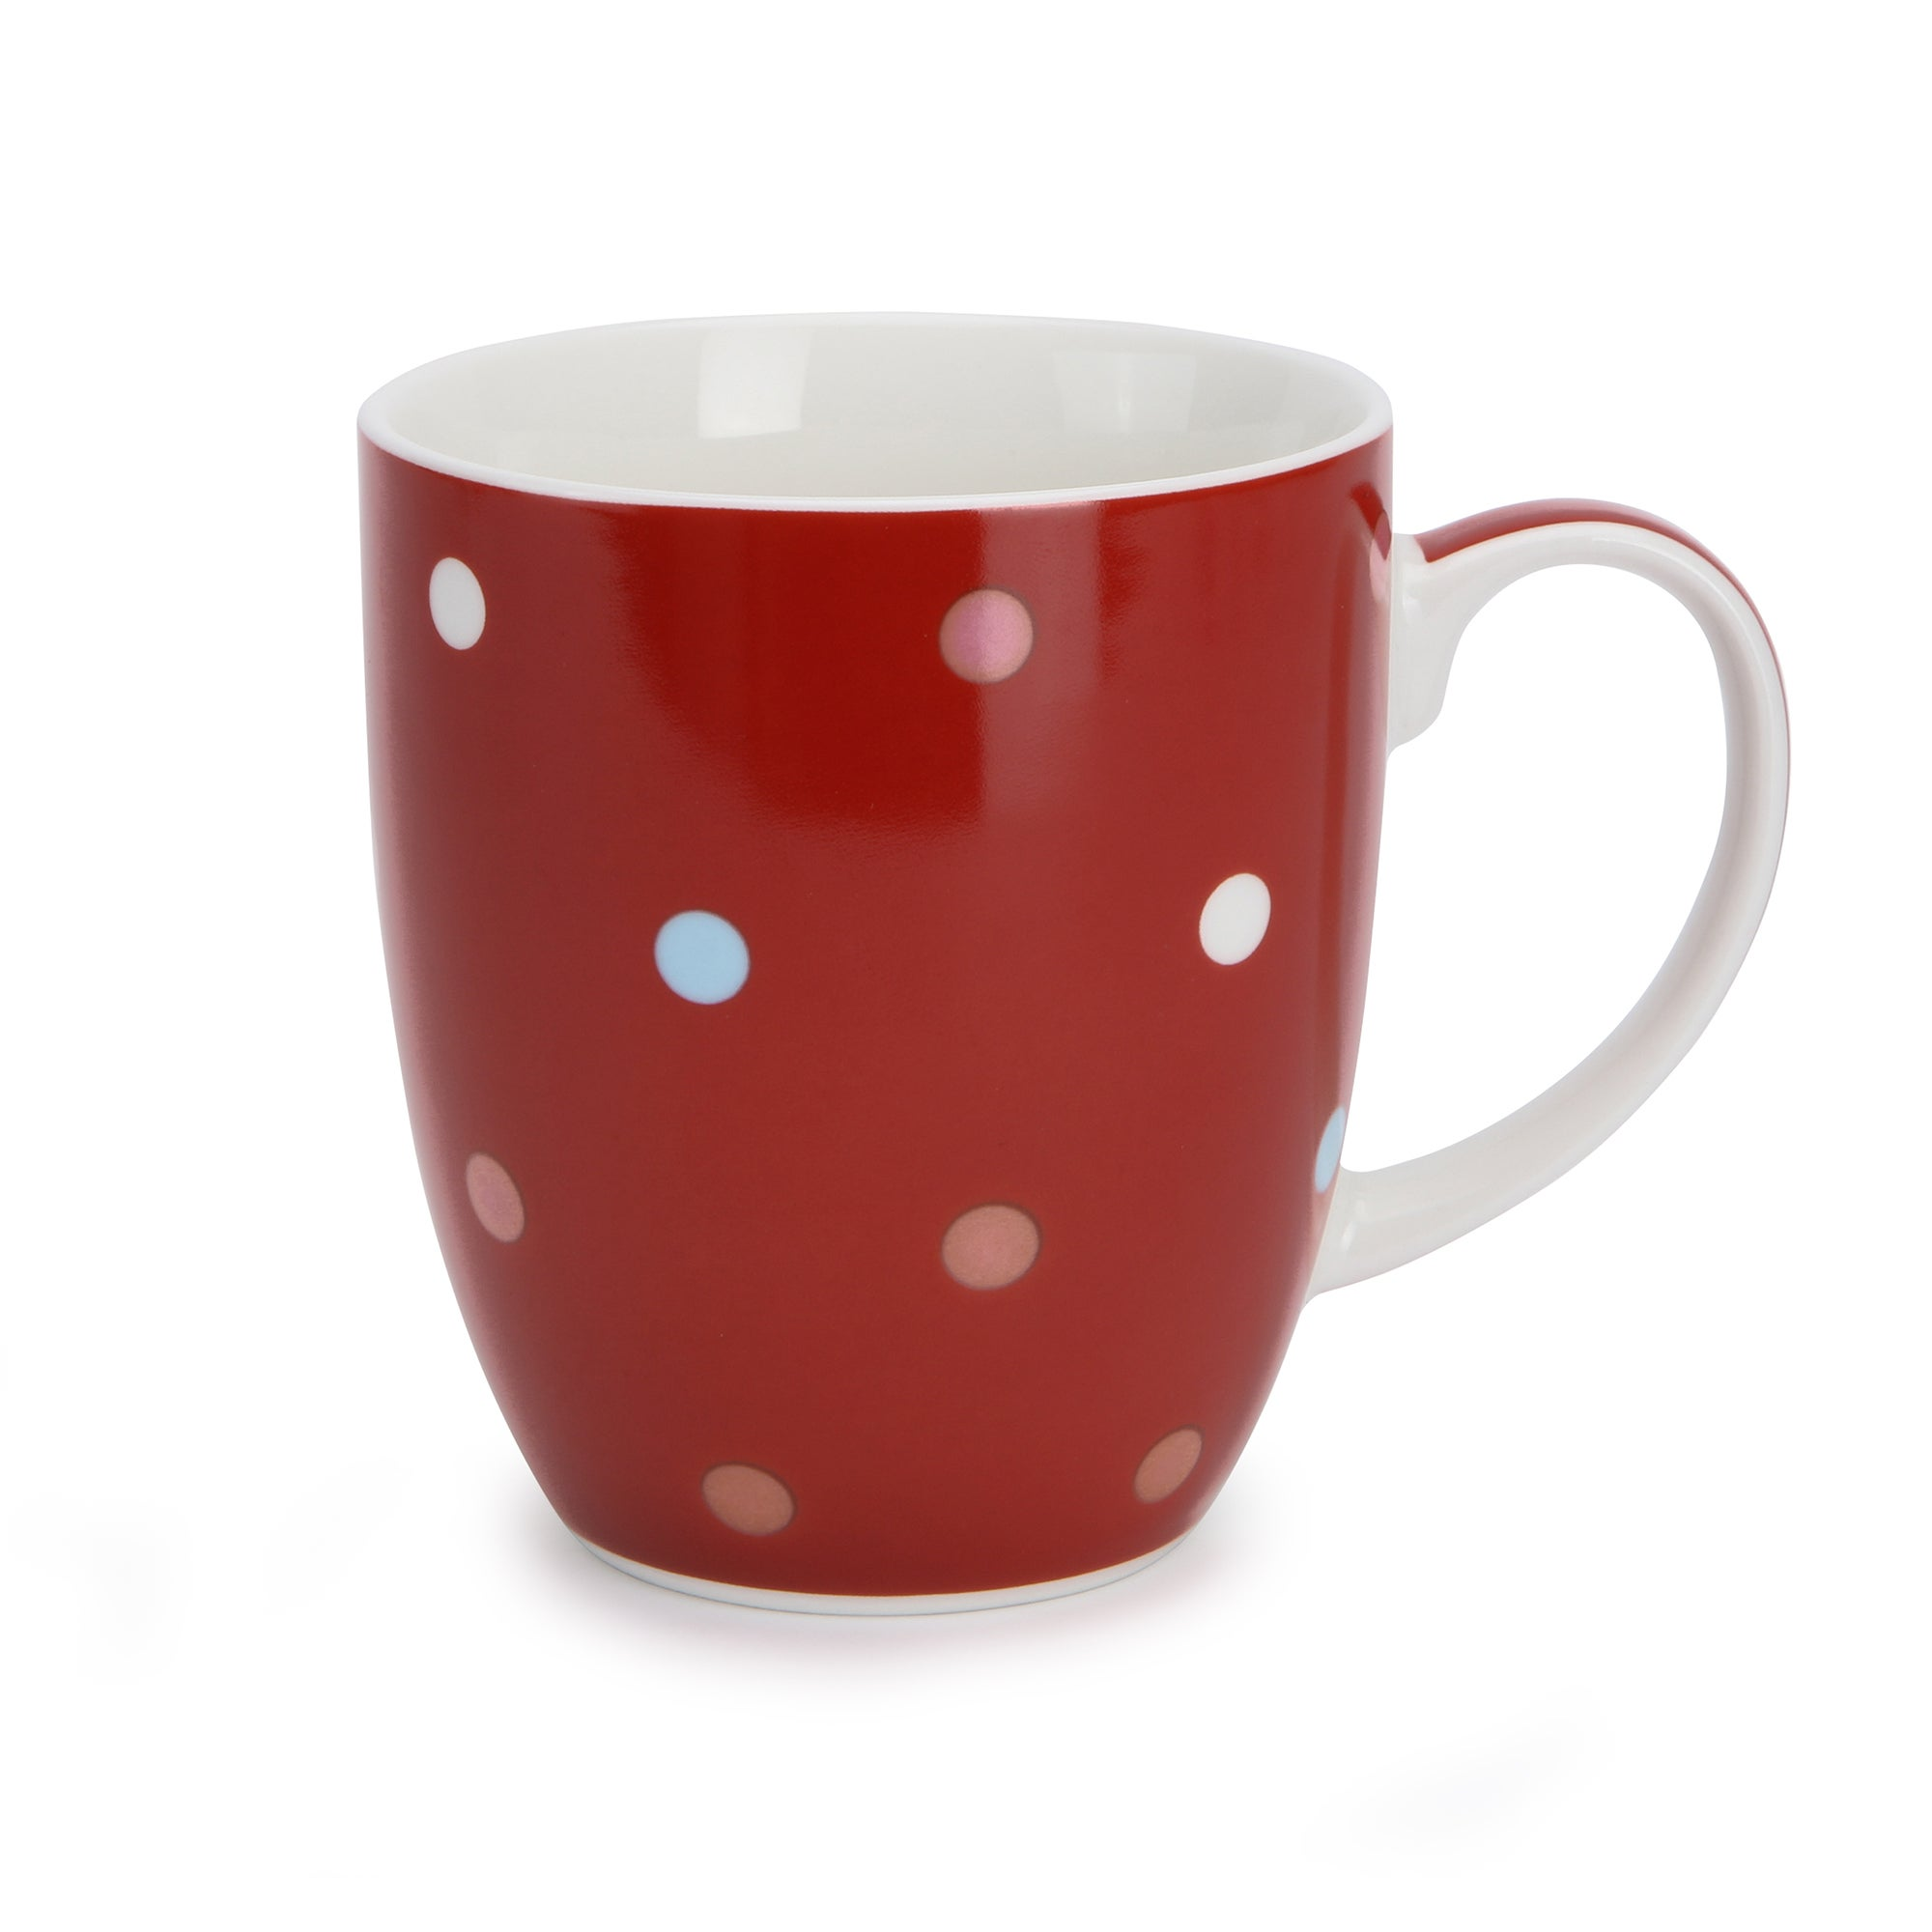 Rose and Ellis Allexton Collection Mug